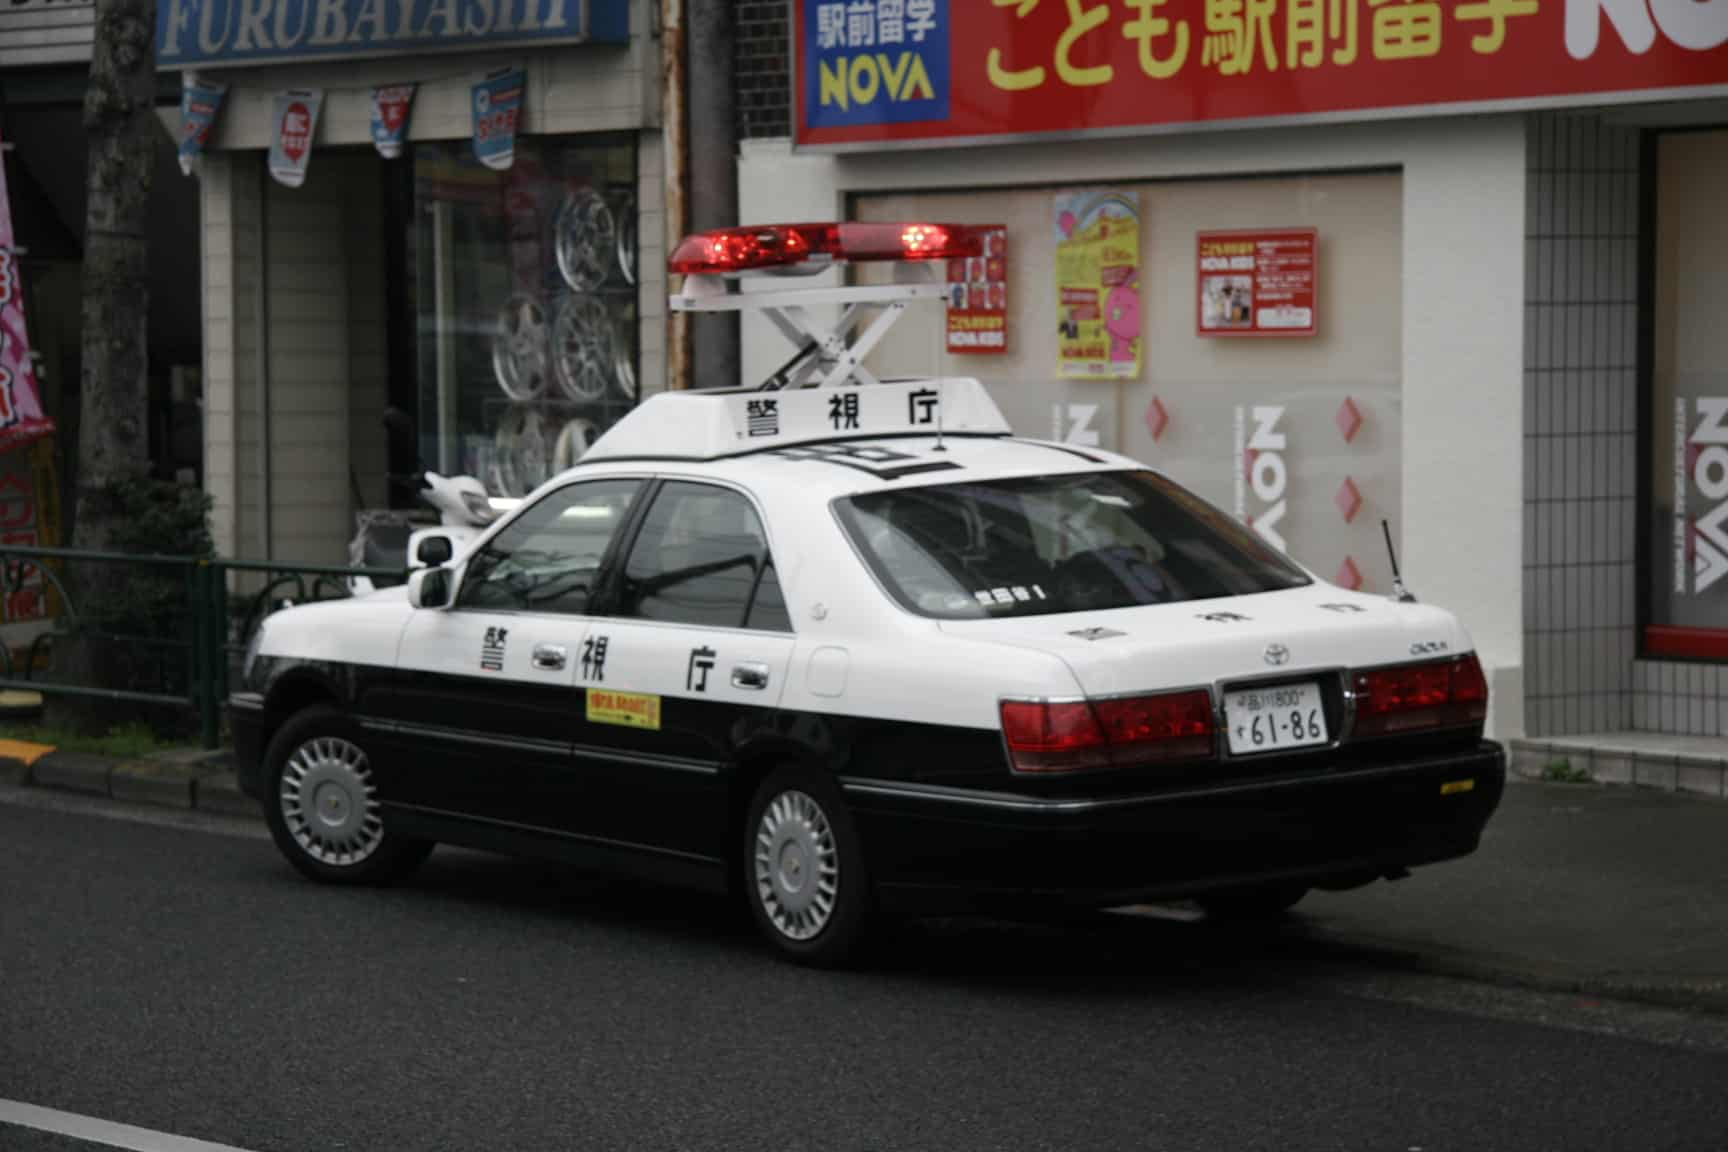 Police japonaise. Image d'illustration.